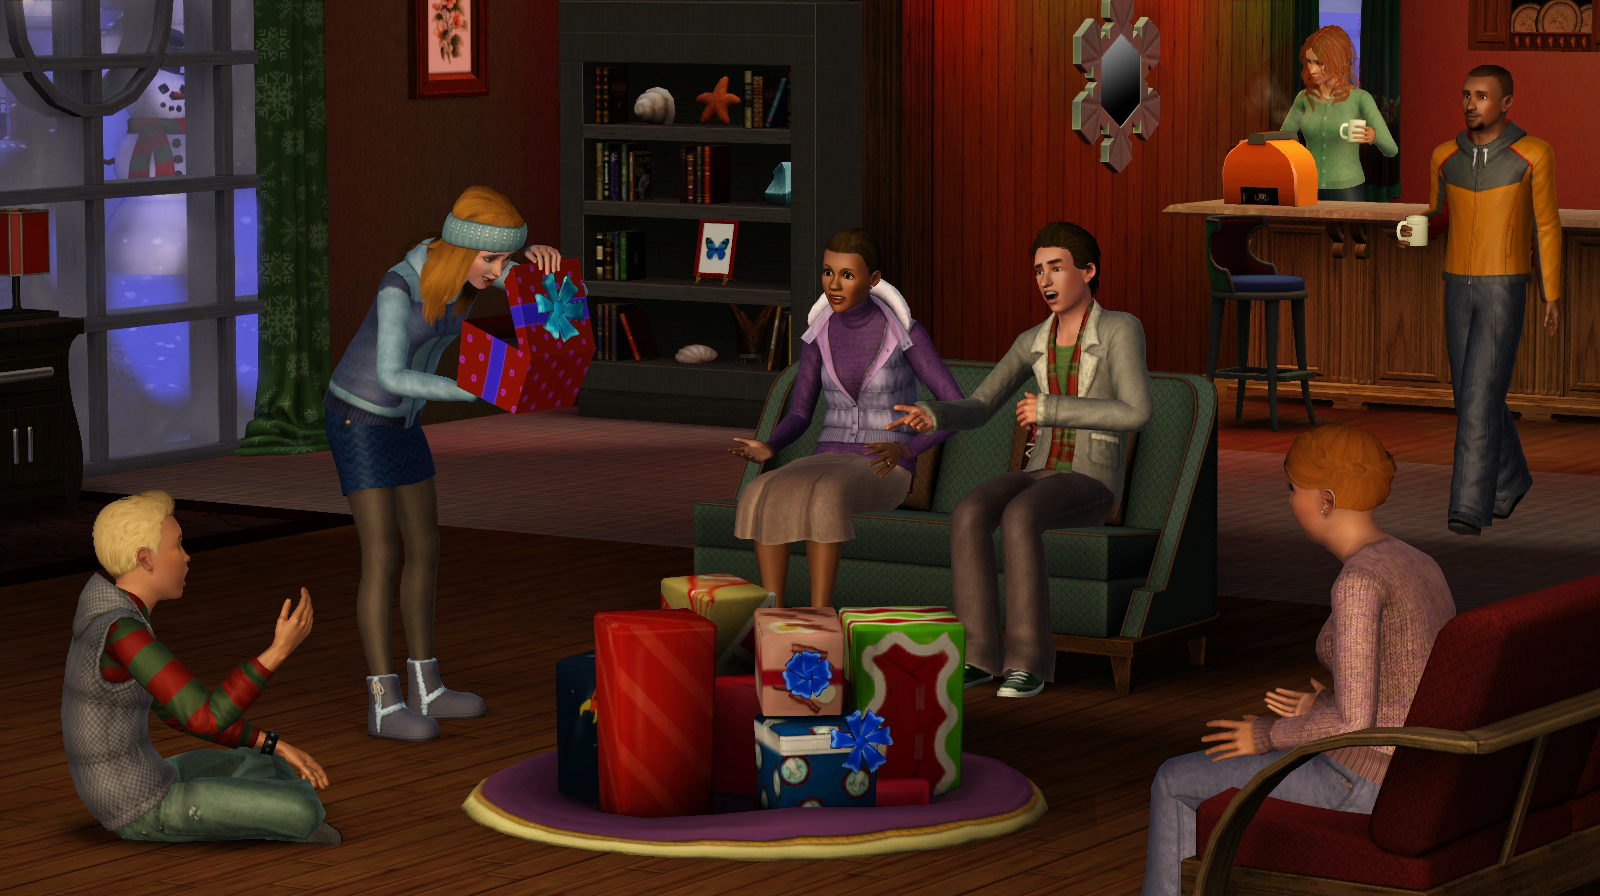 #6D2C1A The Sims 3: Seasons Exapansion Pack – Review (Windows PC  5513 décorations de noel sims 3 saisons 1600x896 px @ aertt.com